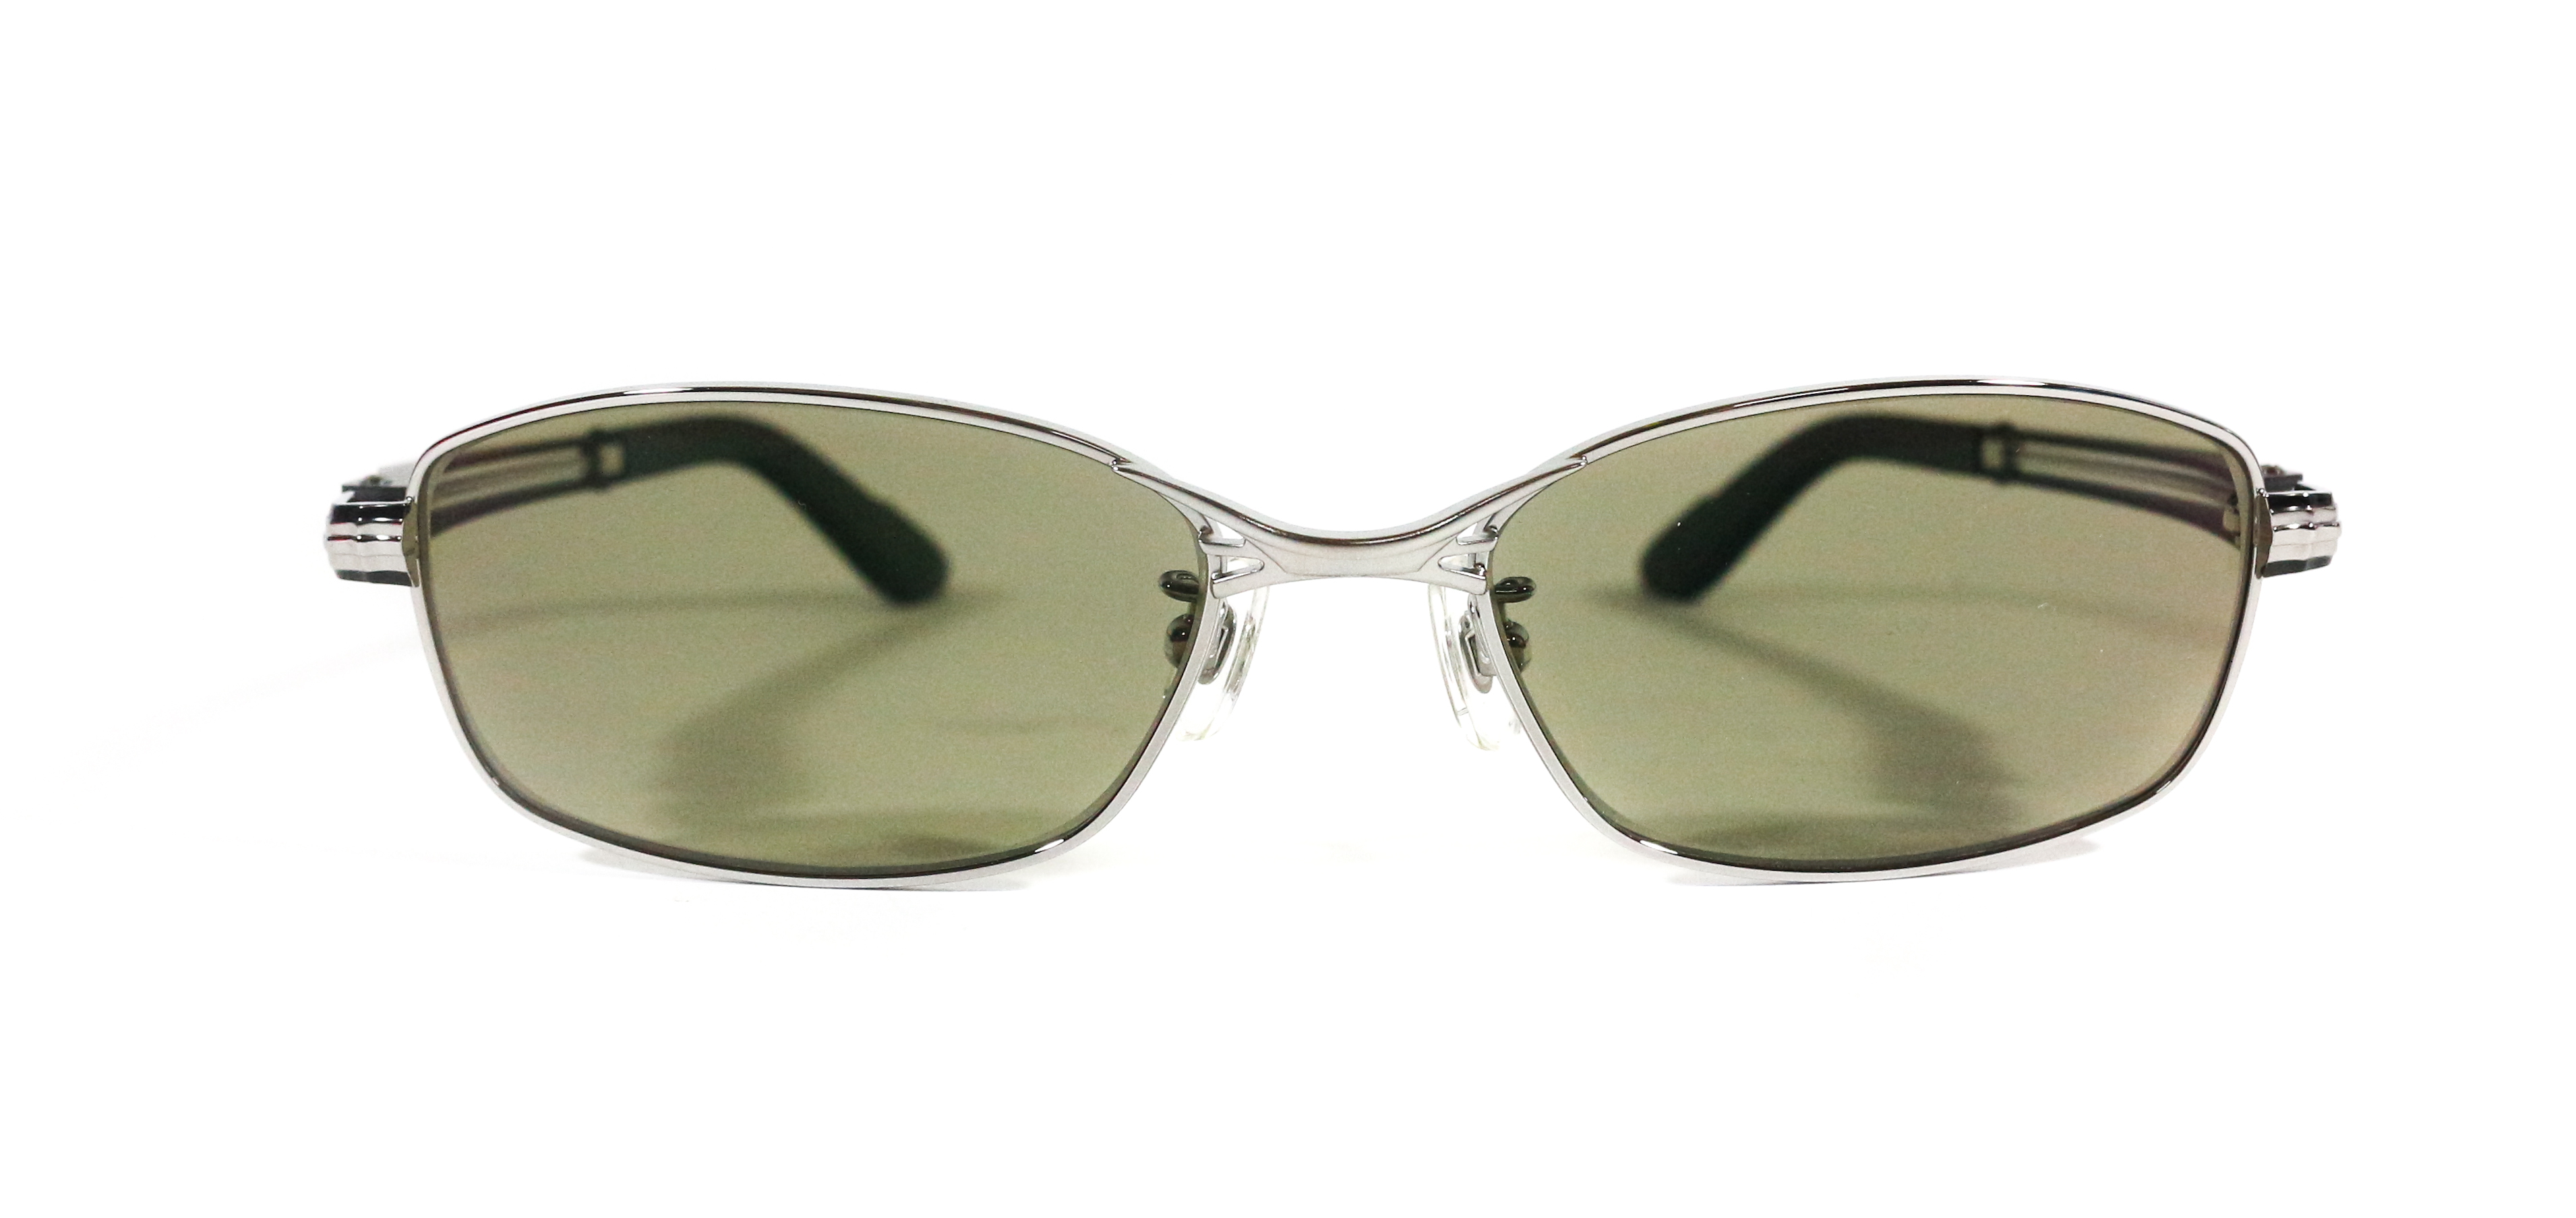 Zeal Polarised Fishing Sunglasses Feiz Alt F-1350 MATTE CHROME TVS (3534)